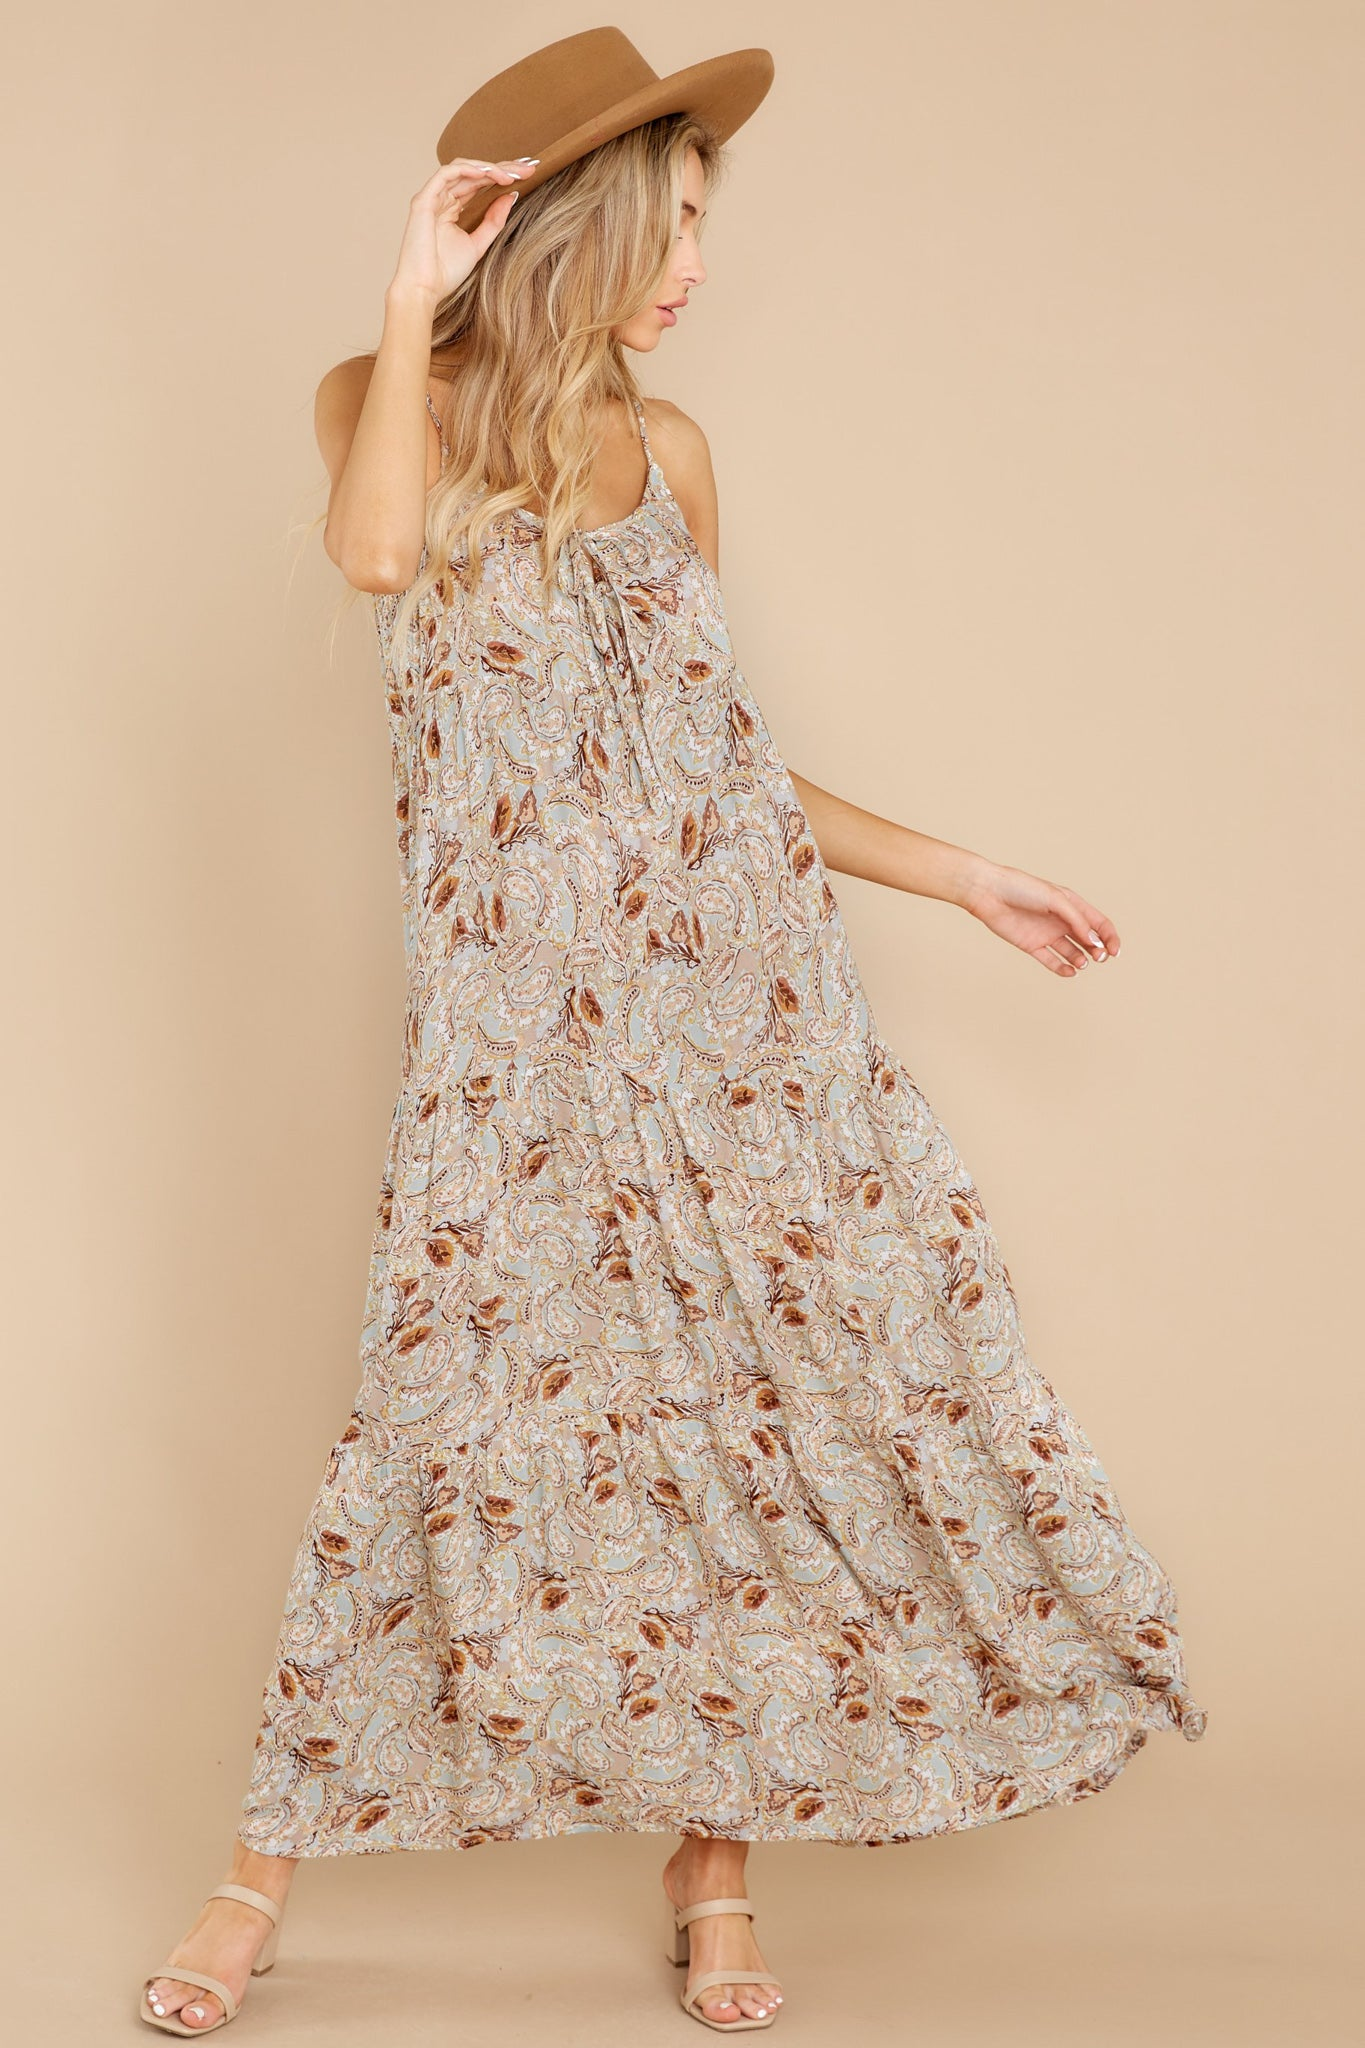 4 Fallen For You Sage And Rust Multi Print Maxi Dress at reddress.com